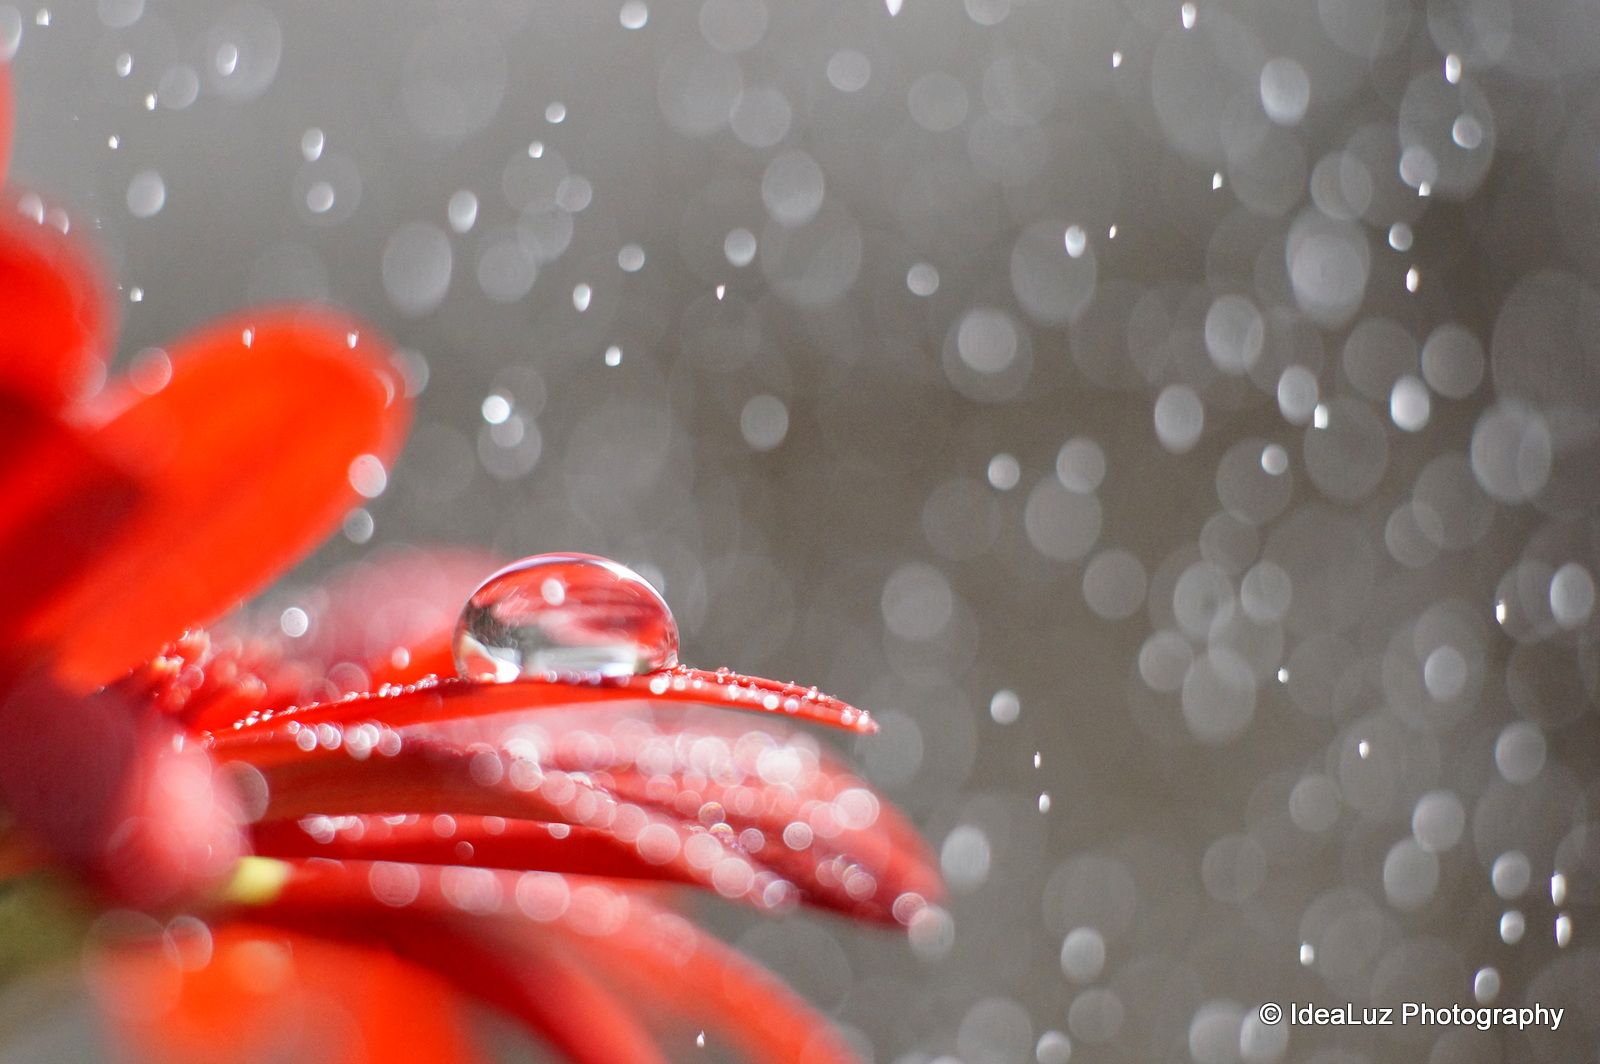 Droplet, drop, petal, flower, red, macro, Sony, Sigma, water, rain, effect, bokeh, refraction